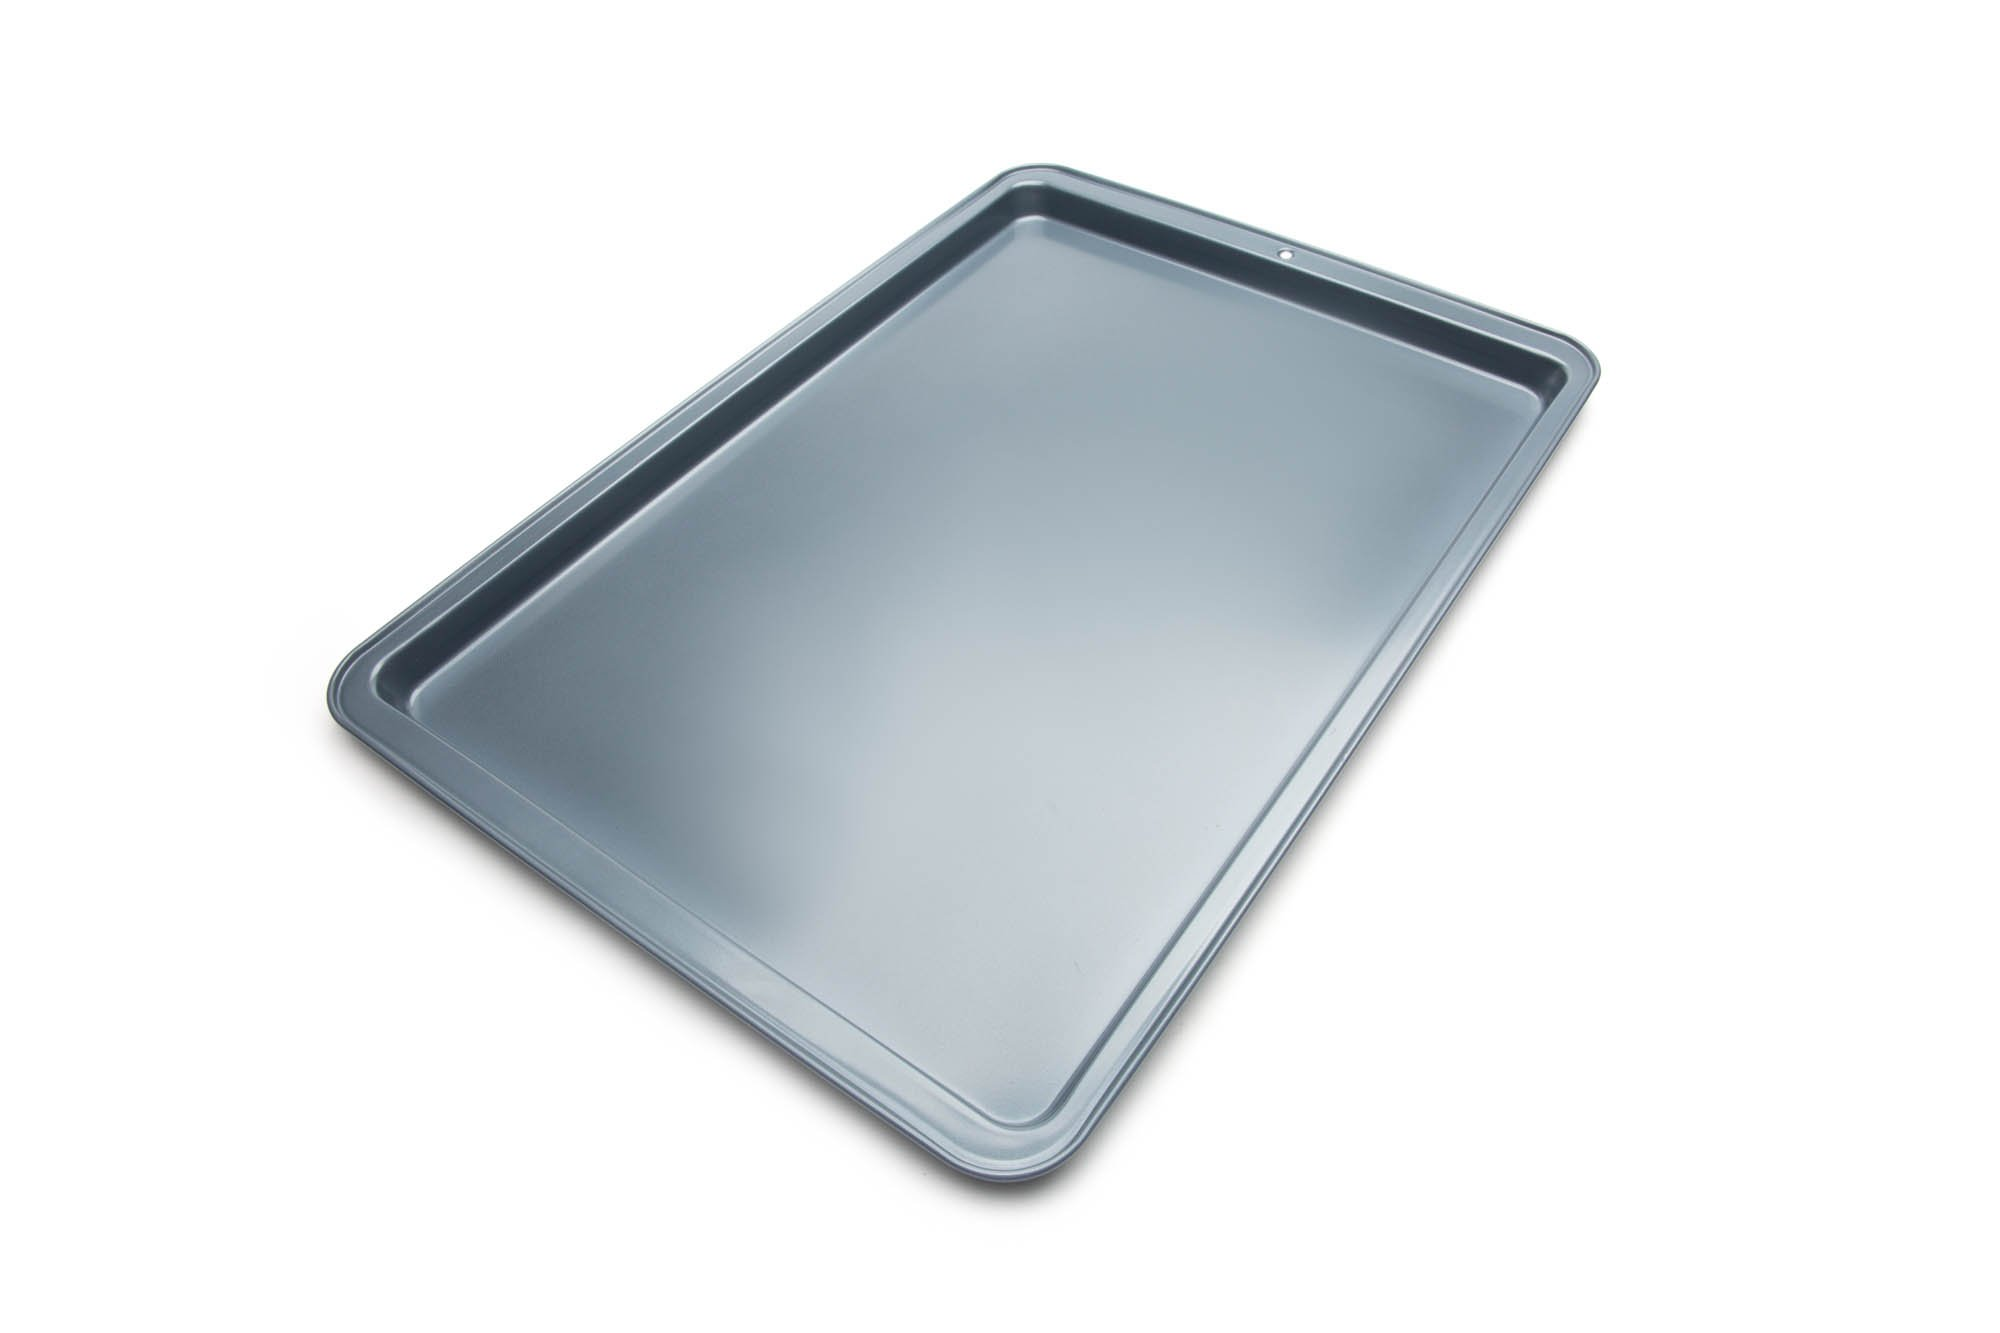 Fox Run 44801 Jelly Roll/Cookie Pan, 14-Inch x 20-Inch, Preferred Non-Stick